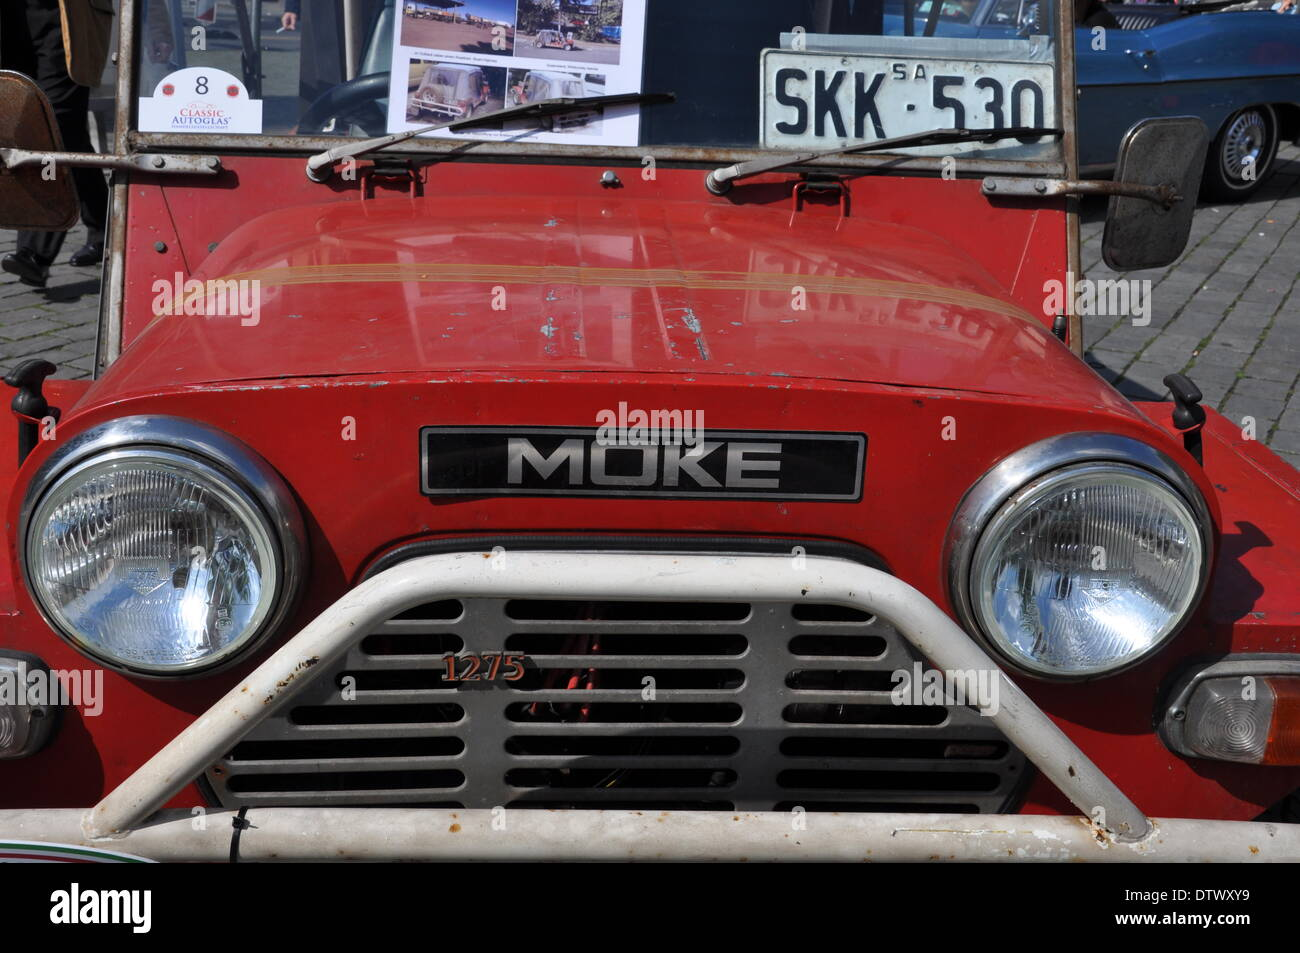 mini moke - Stock Image